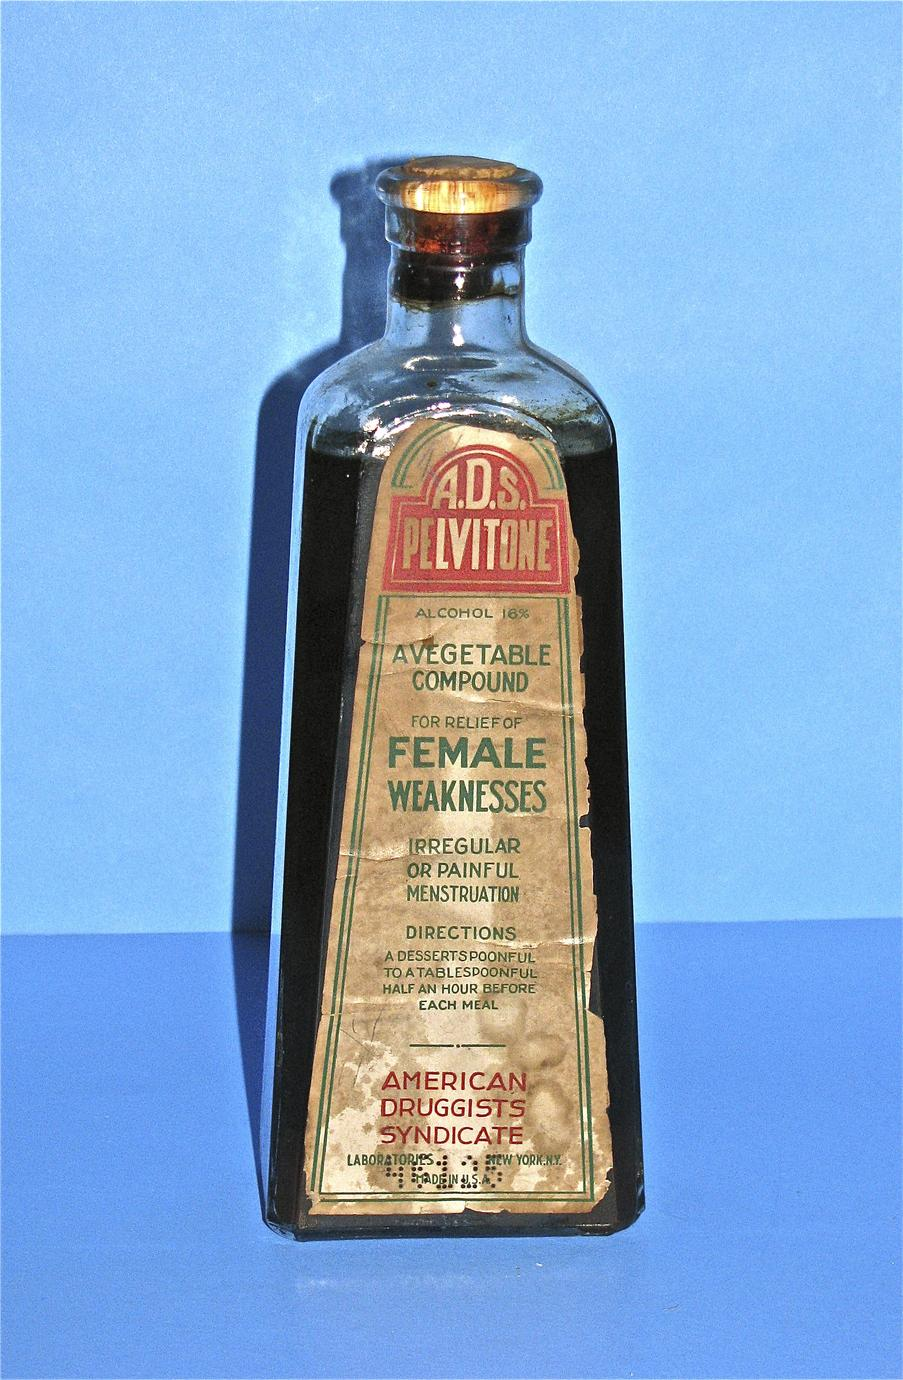 ADS Pelvitone vegetable compound